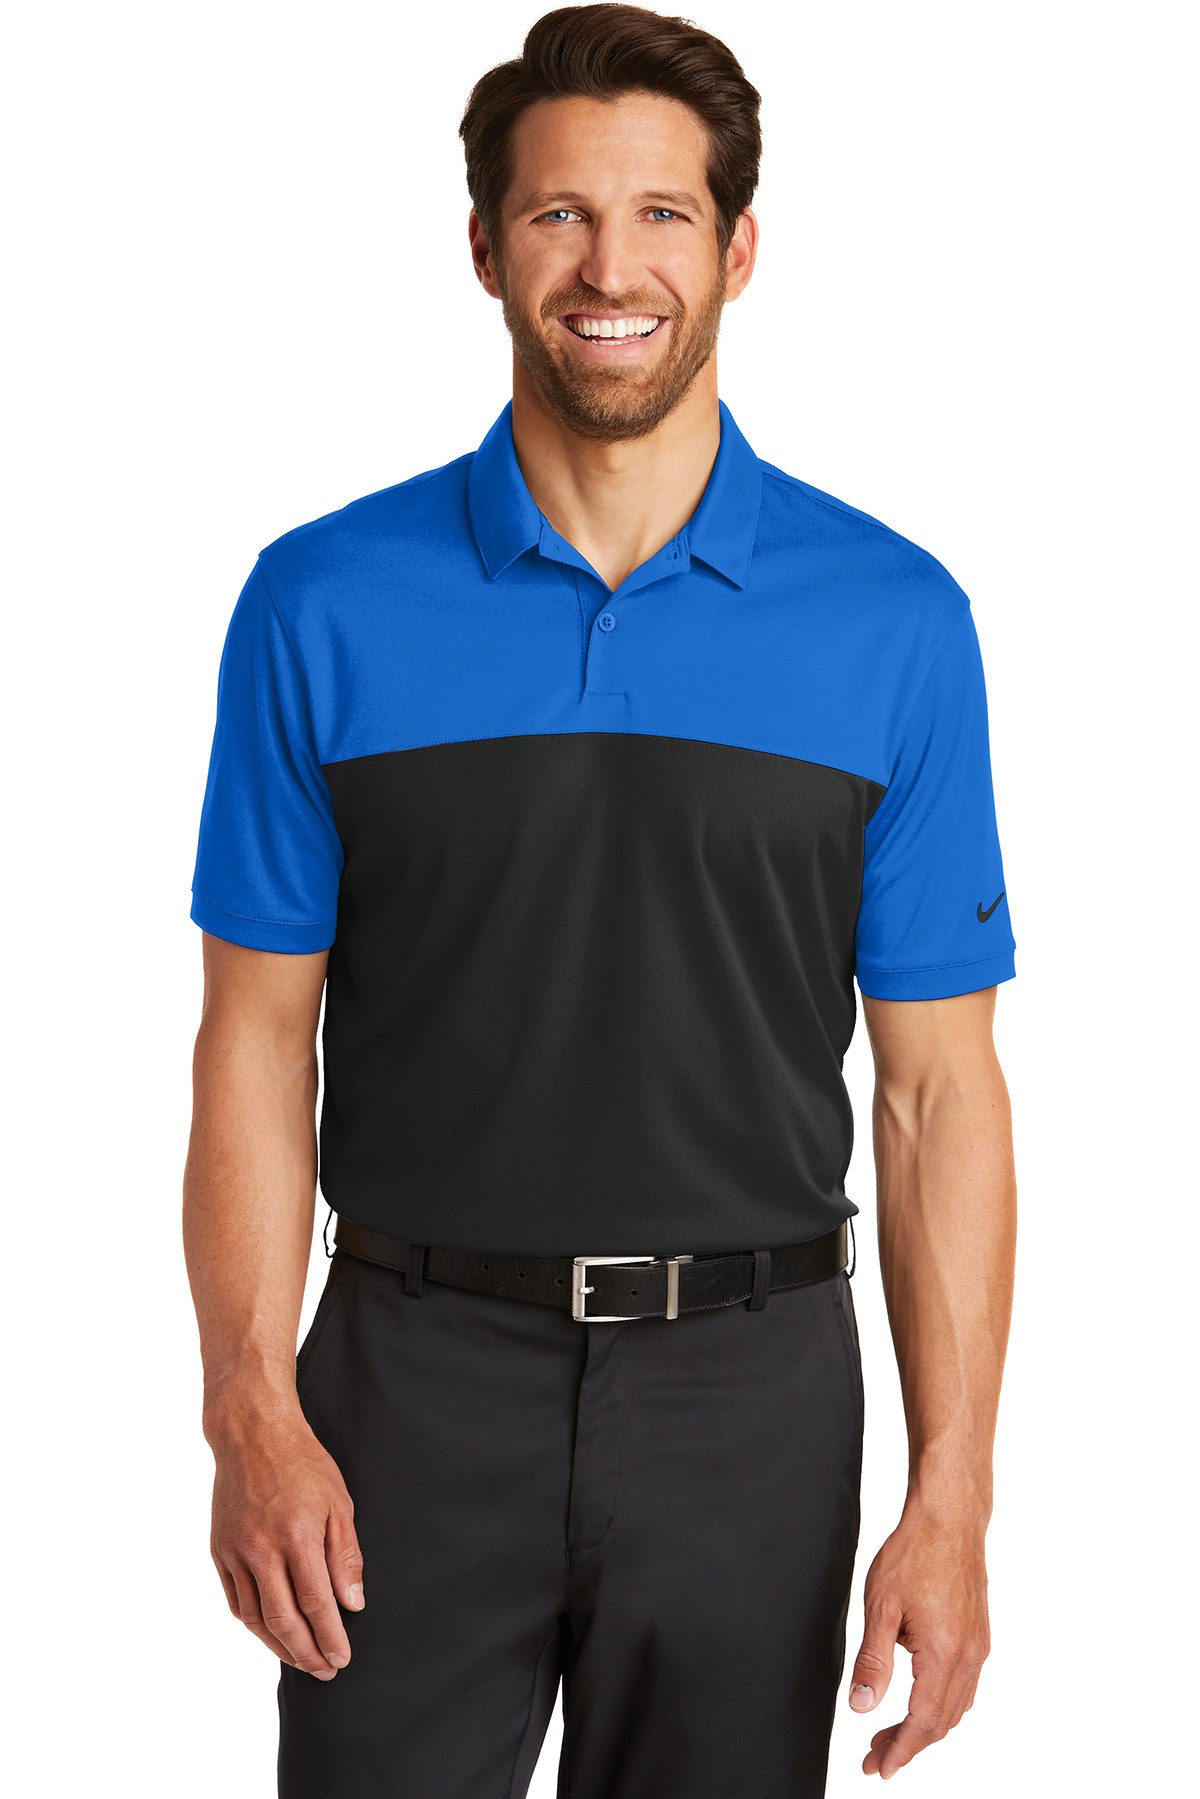 73ec7eba Nike Dri-FIT Colorblock Micro Pique Polo | Performance | Polos/Knits ...